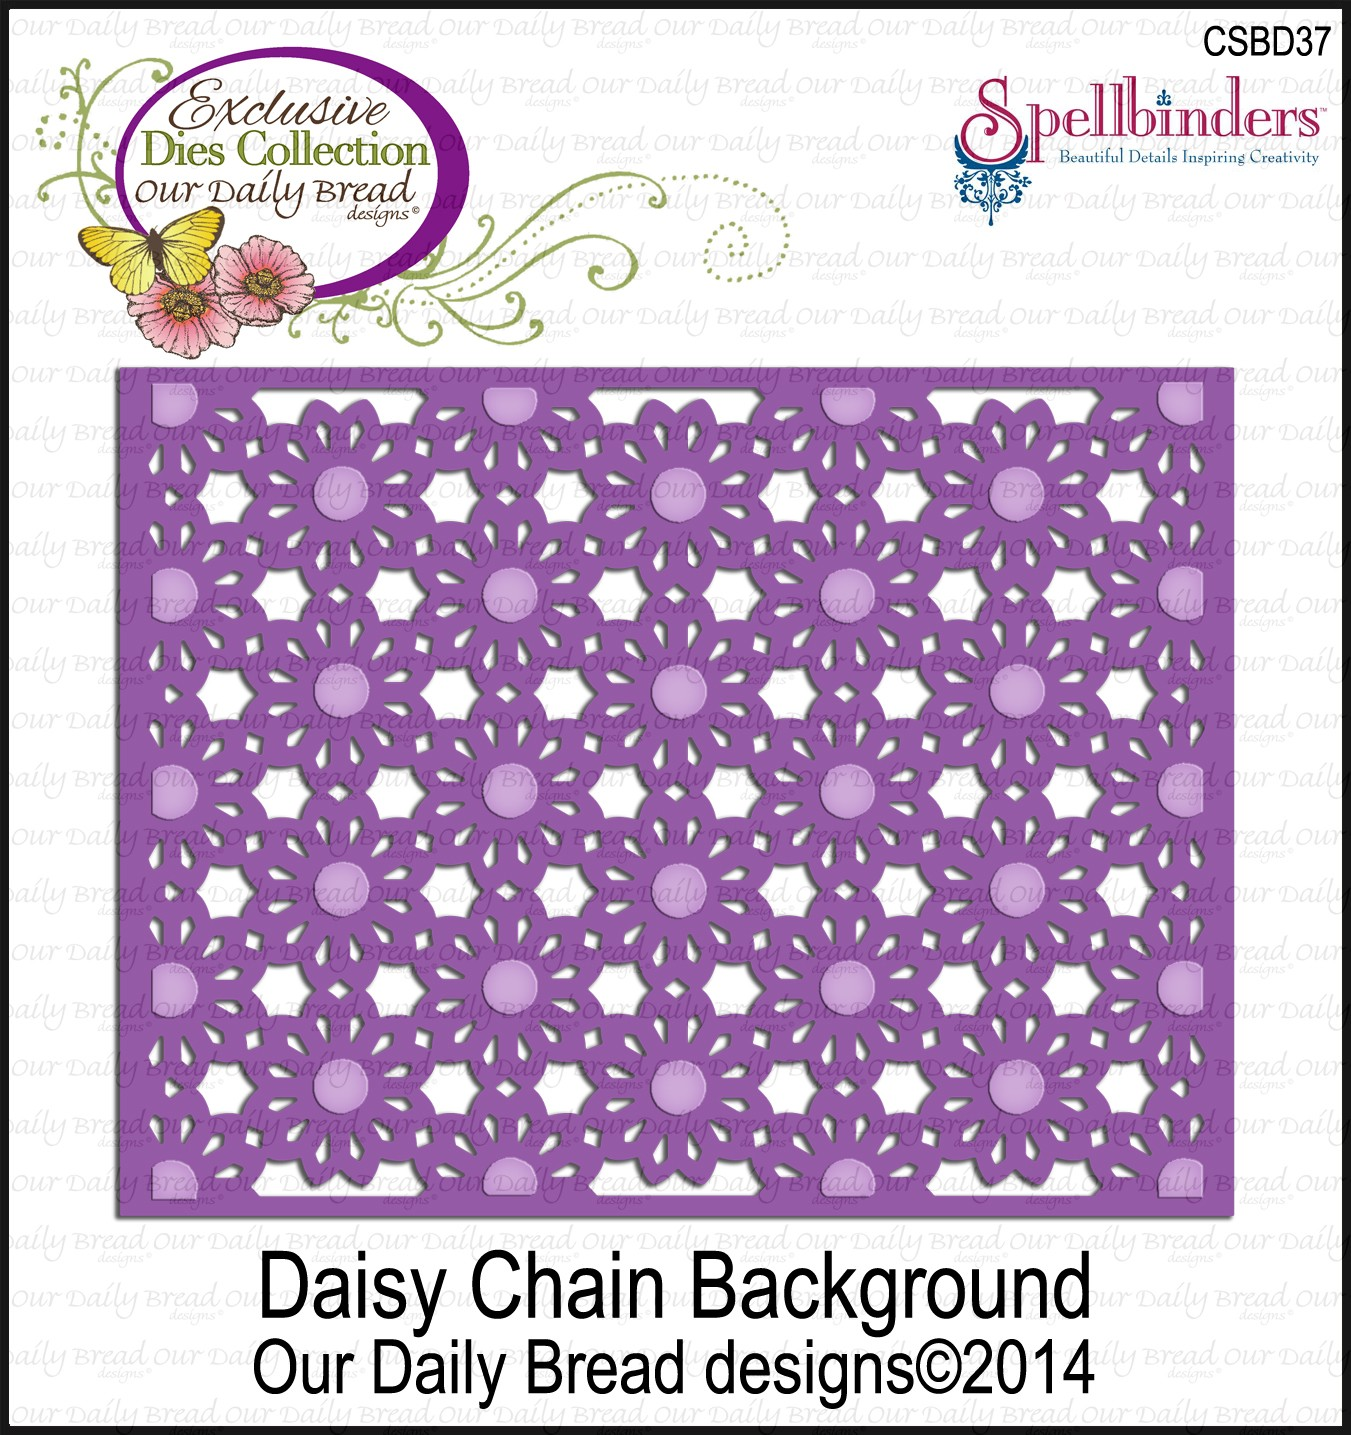 https://www.ourdailybreaddesigns.com/index.php/csbd37-daisy-chain-background-die.html